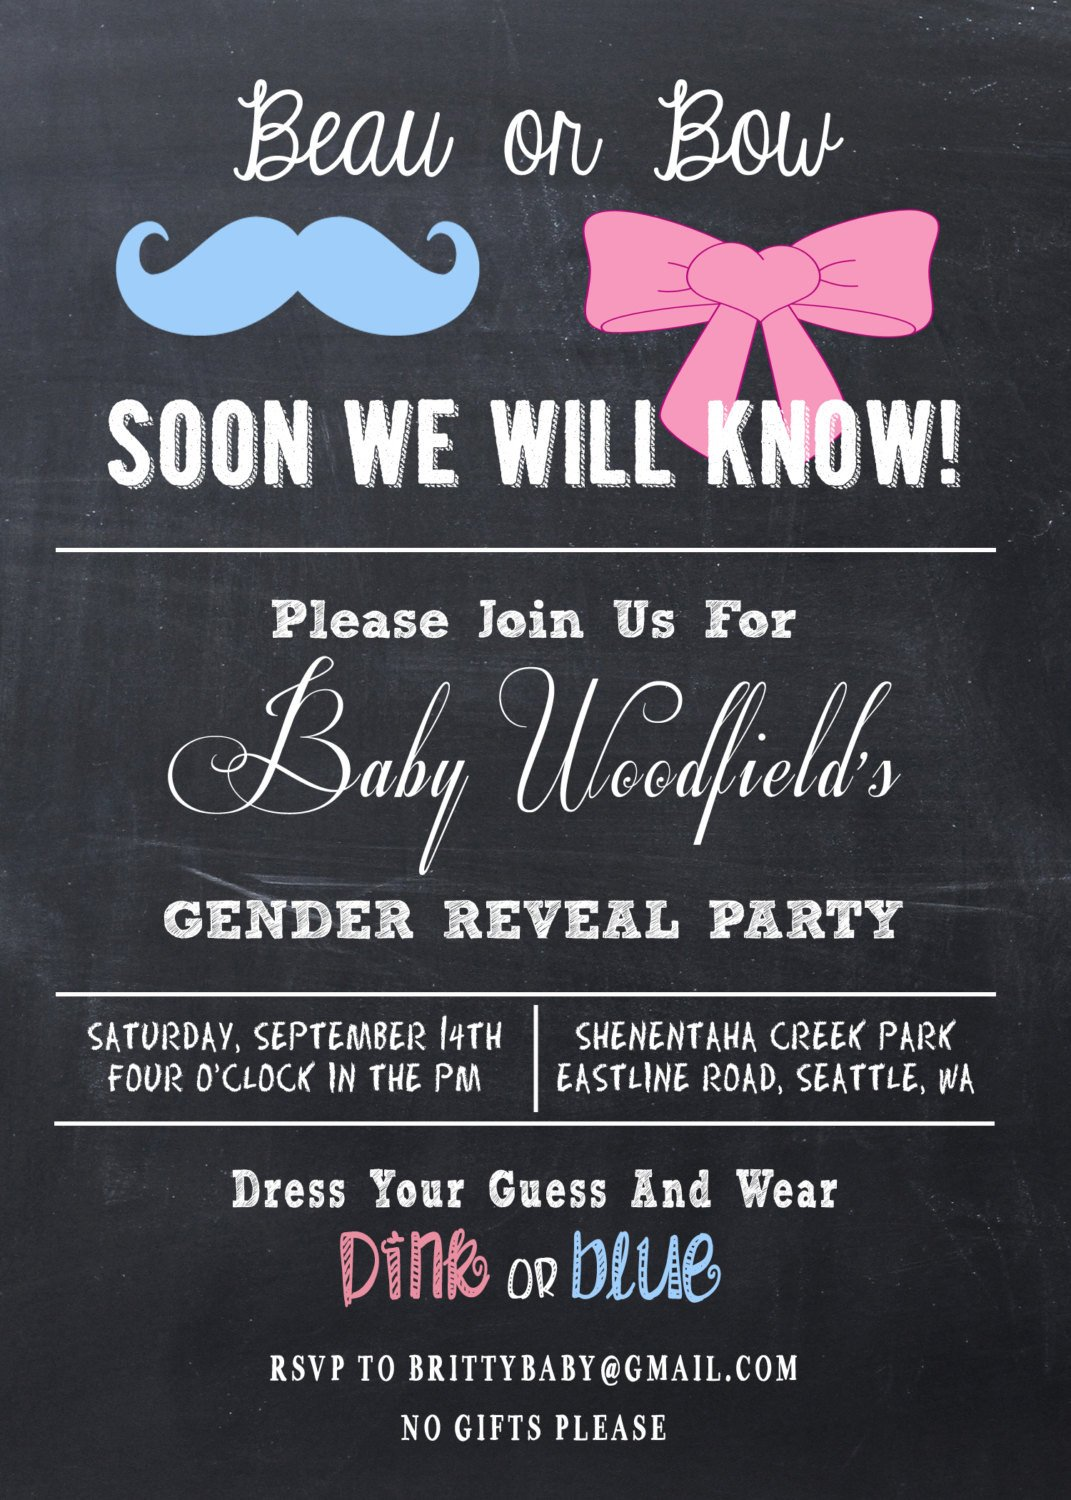 Gender Reveal Invitations Free Gender Reveal Party Invitation Beau or Bow by